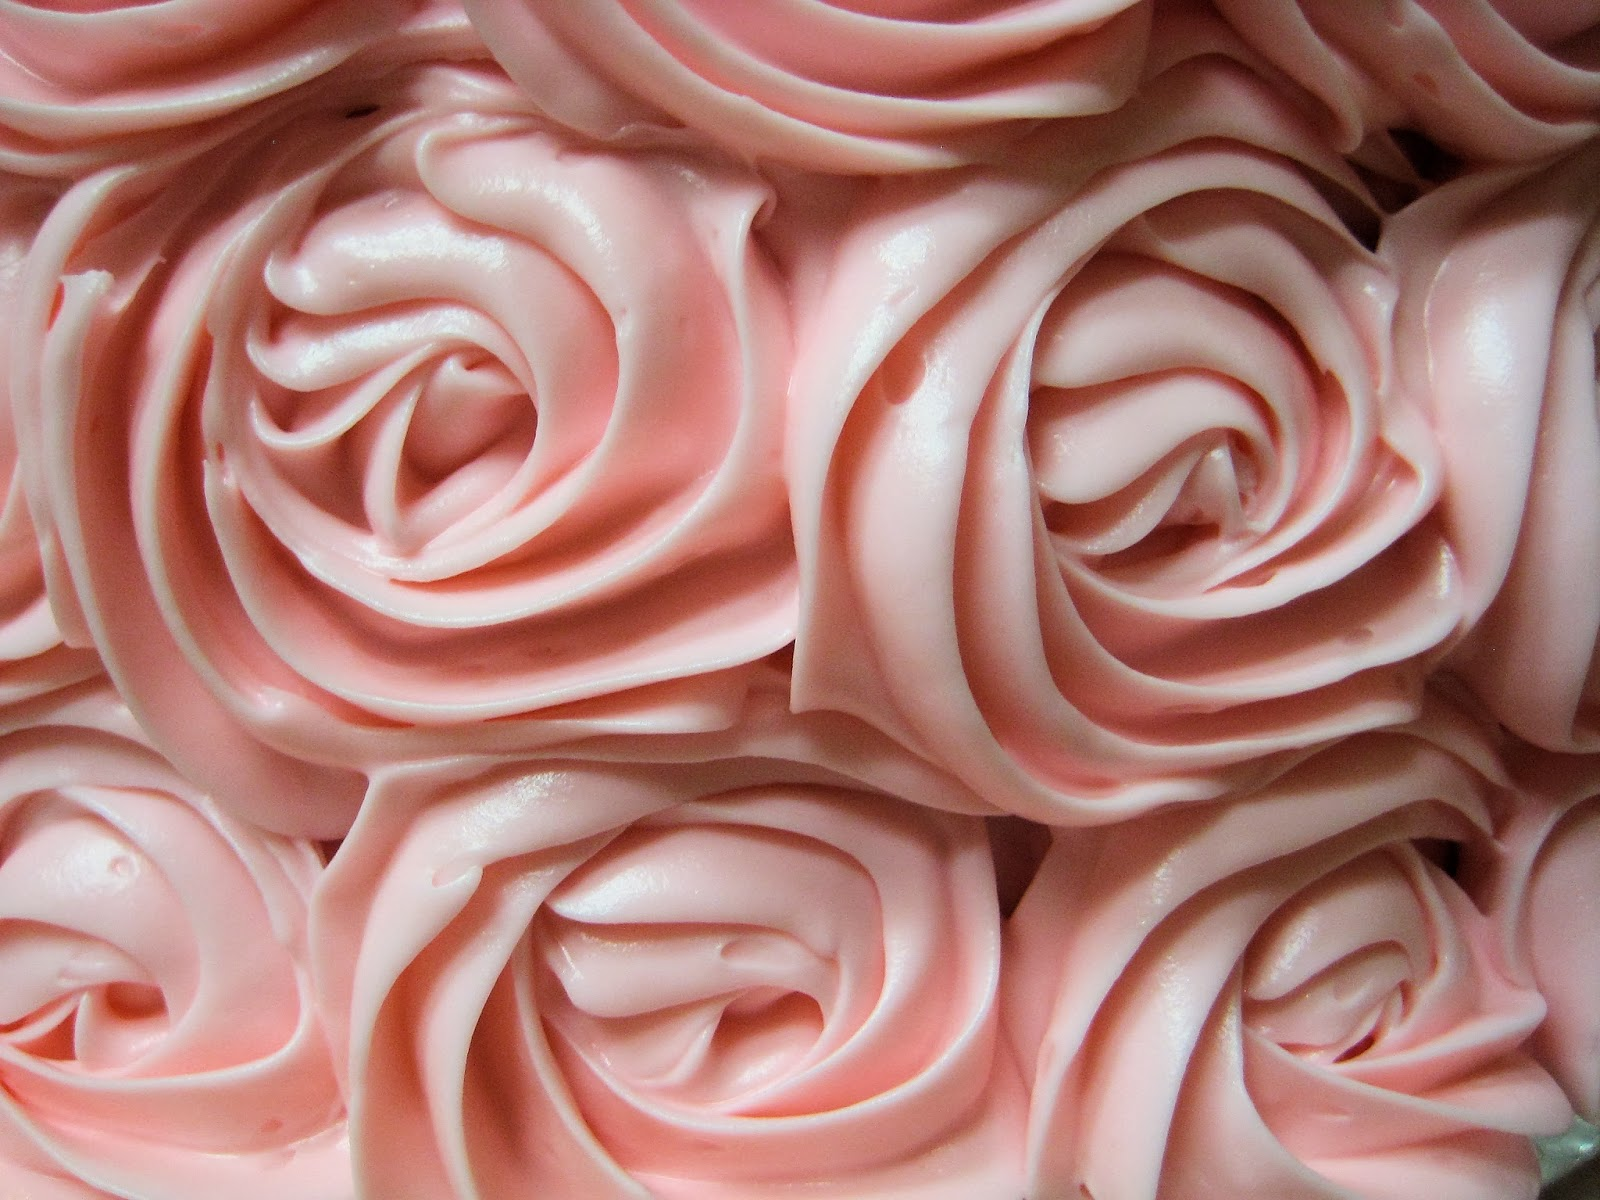 Shabby Chic Baby Shower Pink Rose Cake - Close-Up View of Roses